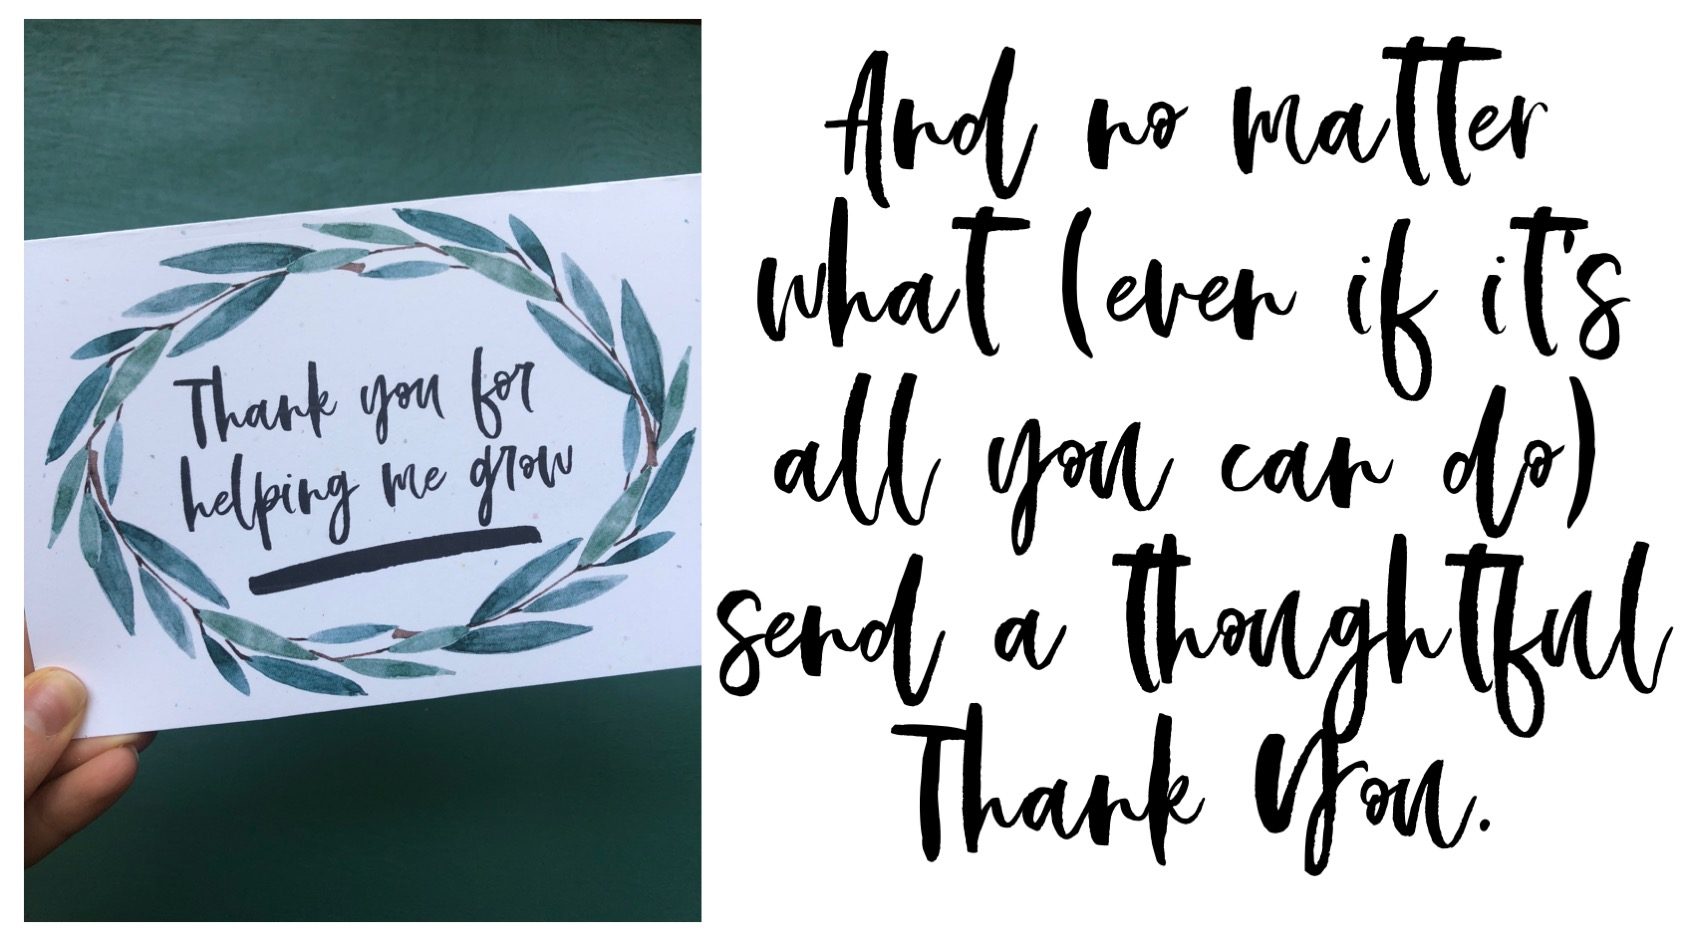 Gifts for Teachers | Teacher Appreciation Gifts | Free Printable Thank You Card